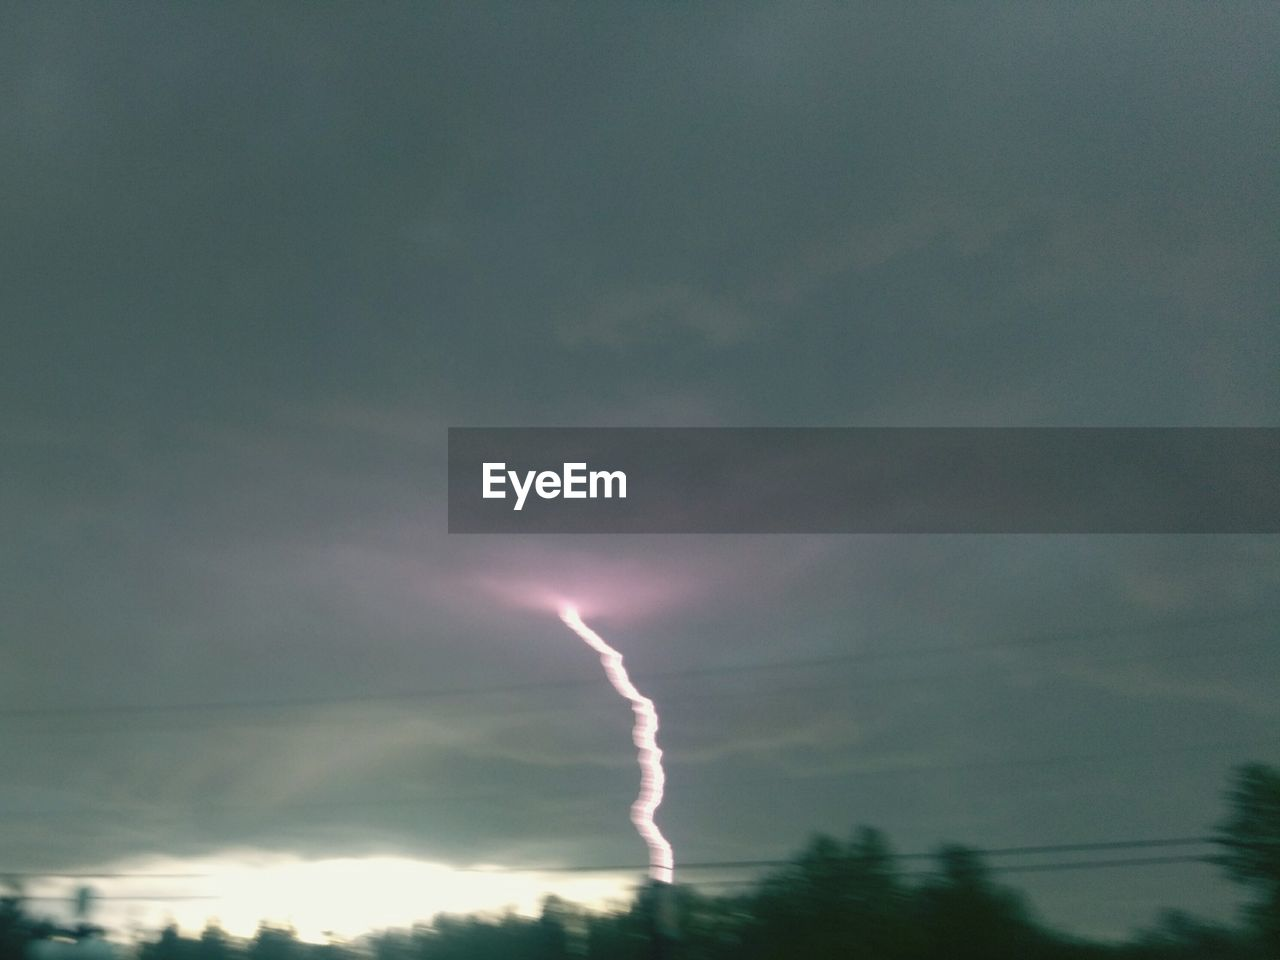 sky, nature, scenics, no people, beauty in nature, vapor trail, night, low angle view, lightning, outdoors, contrail, forked lightning